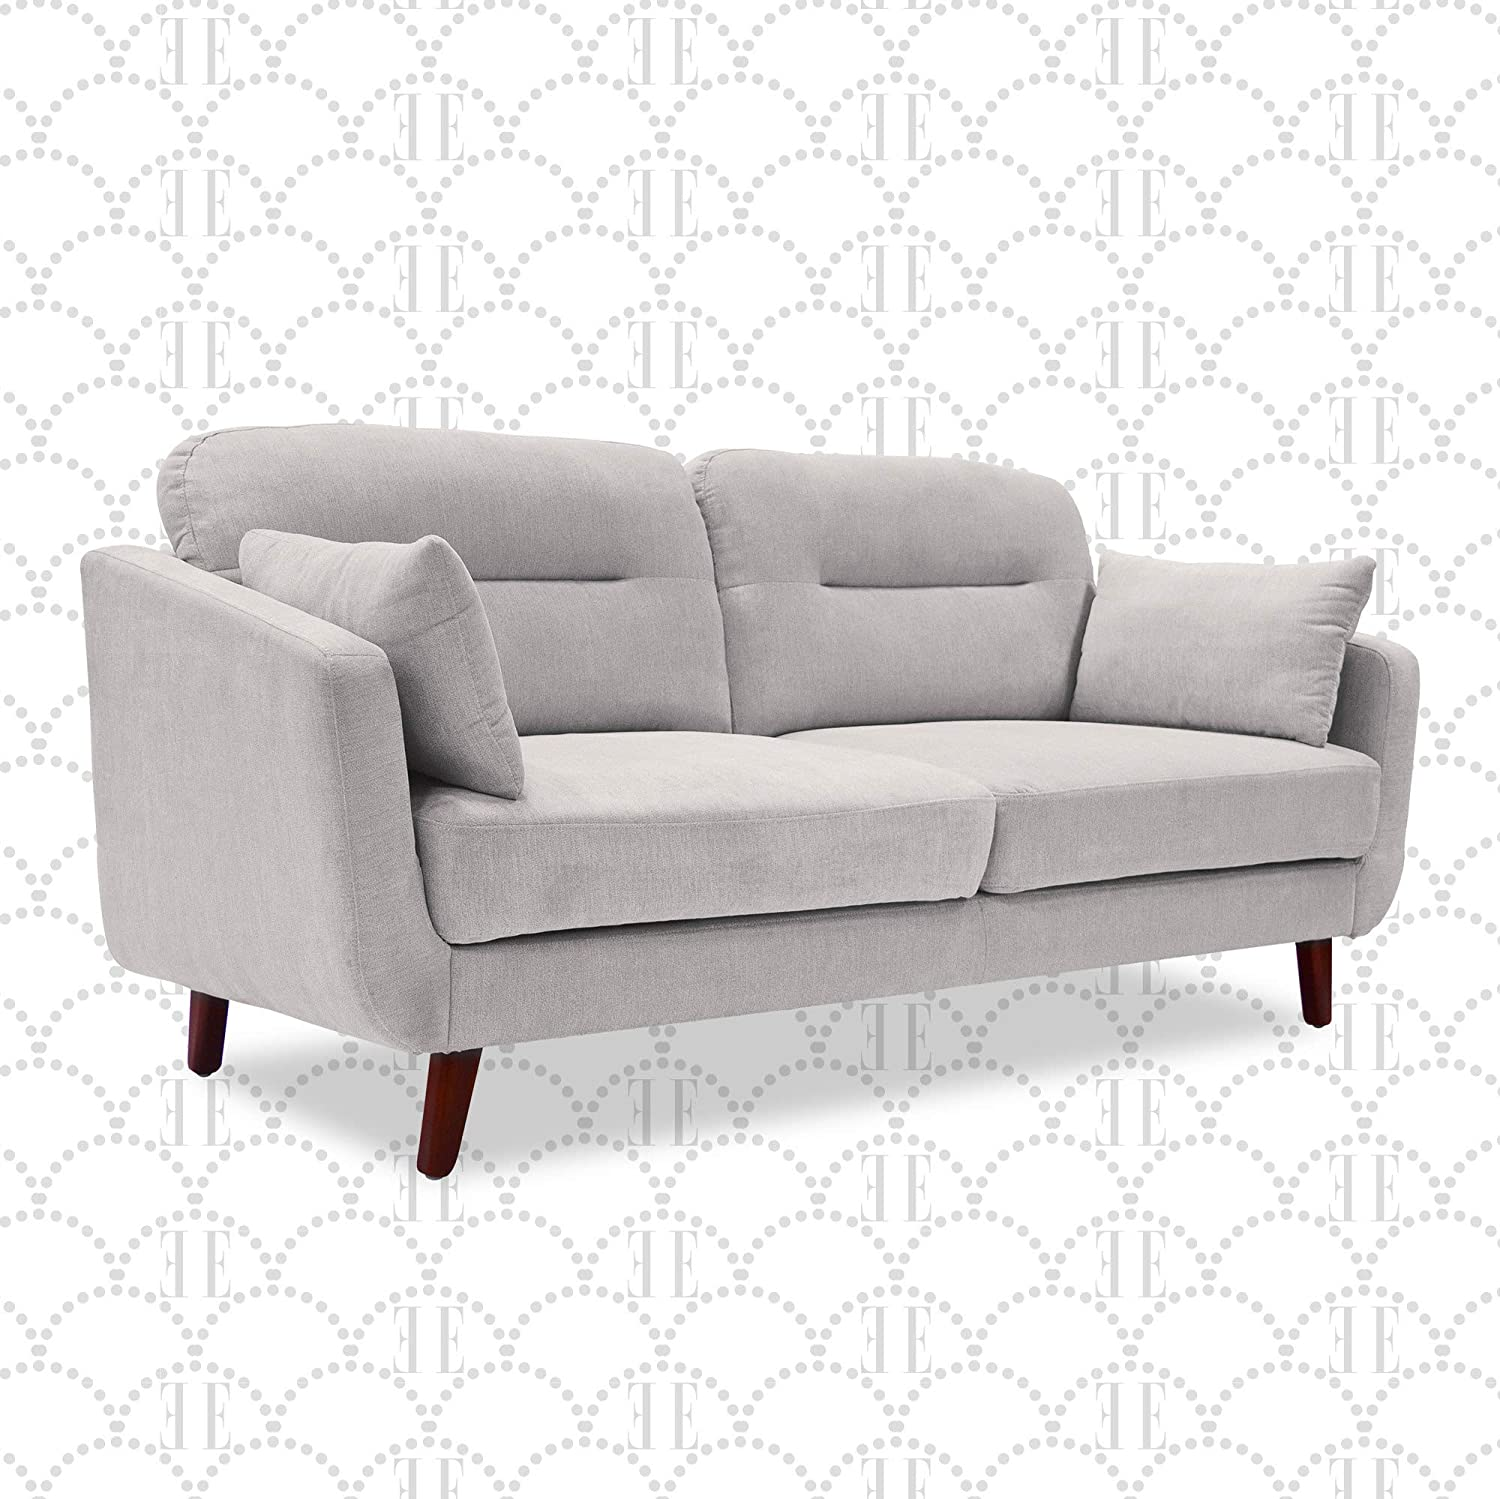 elle decor chloe upholstered living room sofa tufted fabric couch mid century walnut tapered footers 61 loveseat light gray